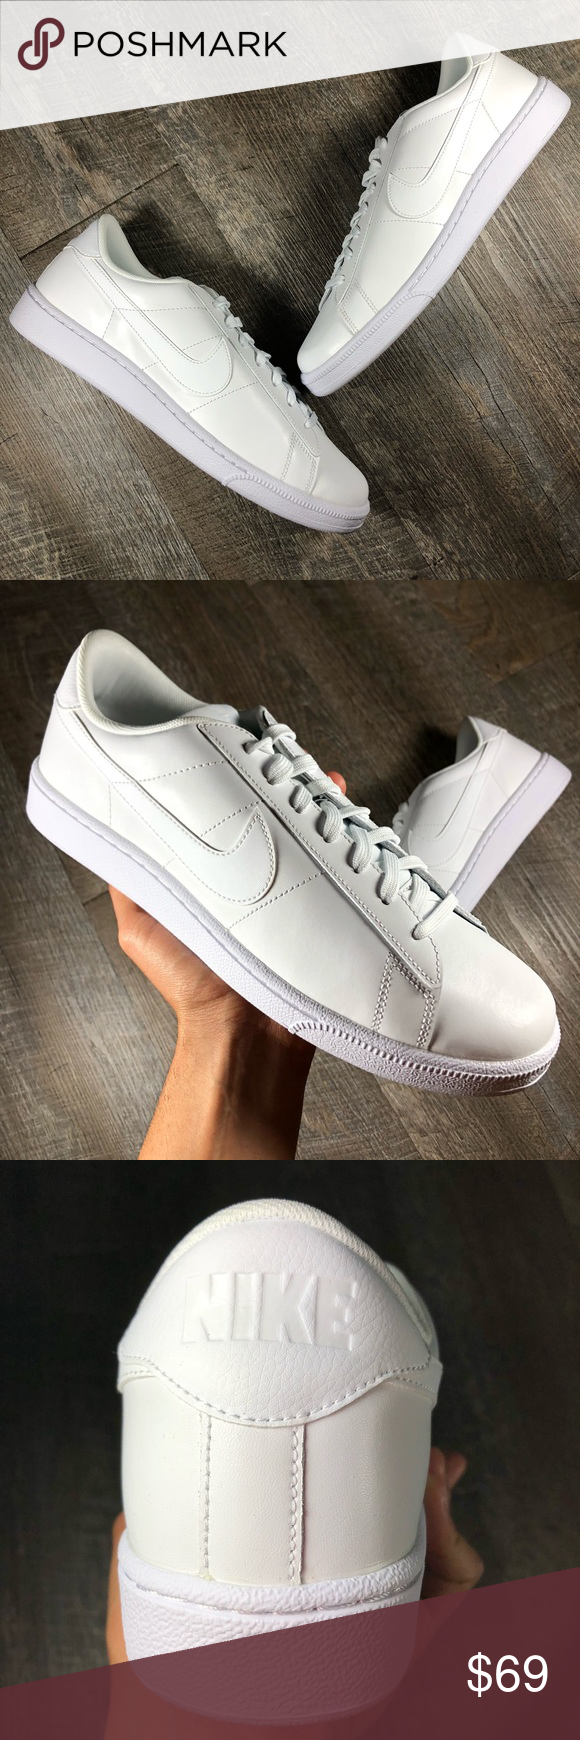 finest selection 57b85 aa09d Nike Tennis Classic CS (683613-104) Men s shoes size 9.5 Ships the next day  🔥📦⚡ Nike Shoes Sneakers